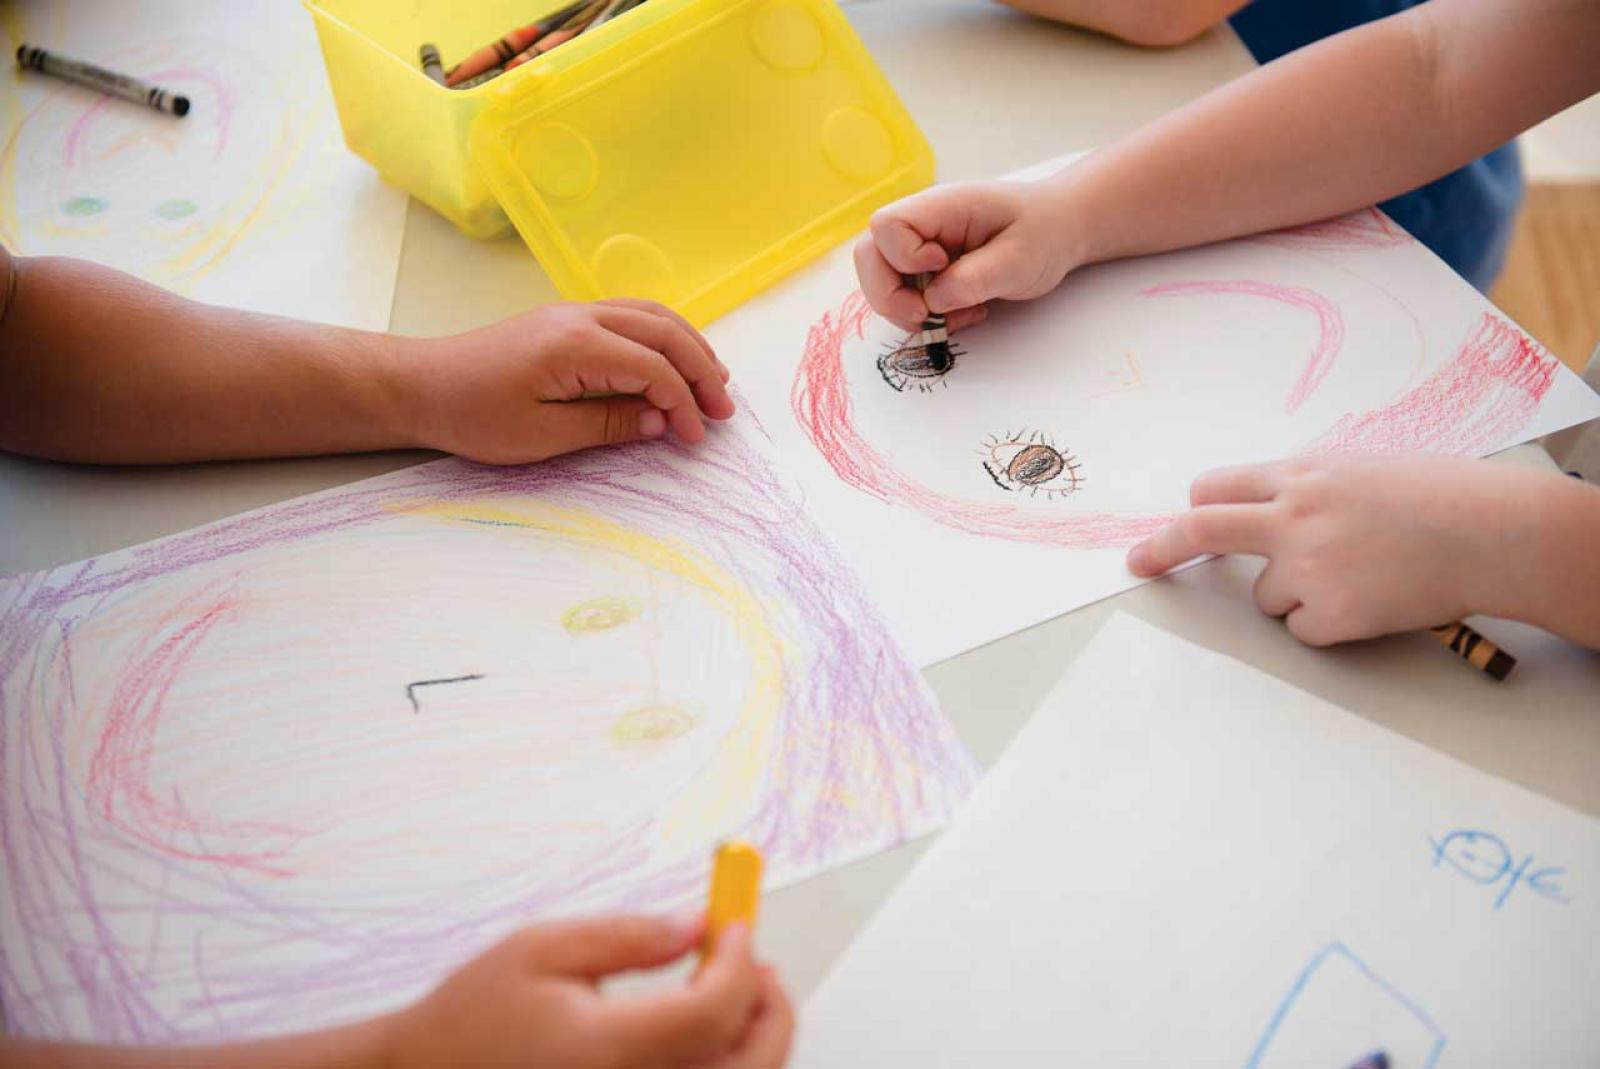 Students drawing with crayons